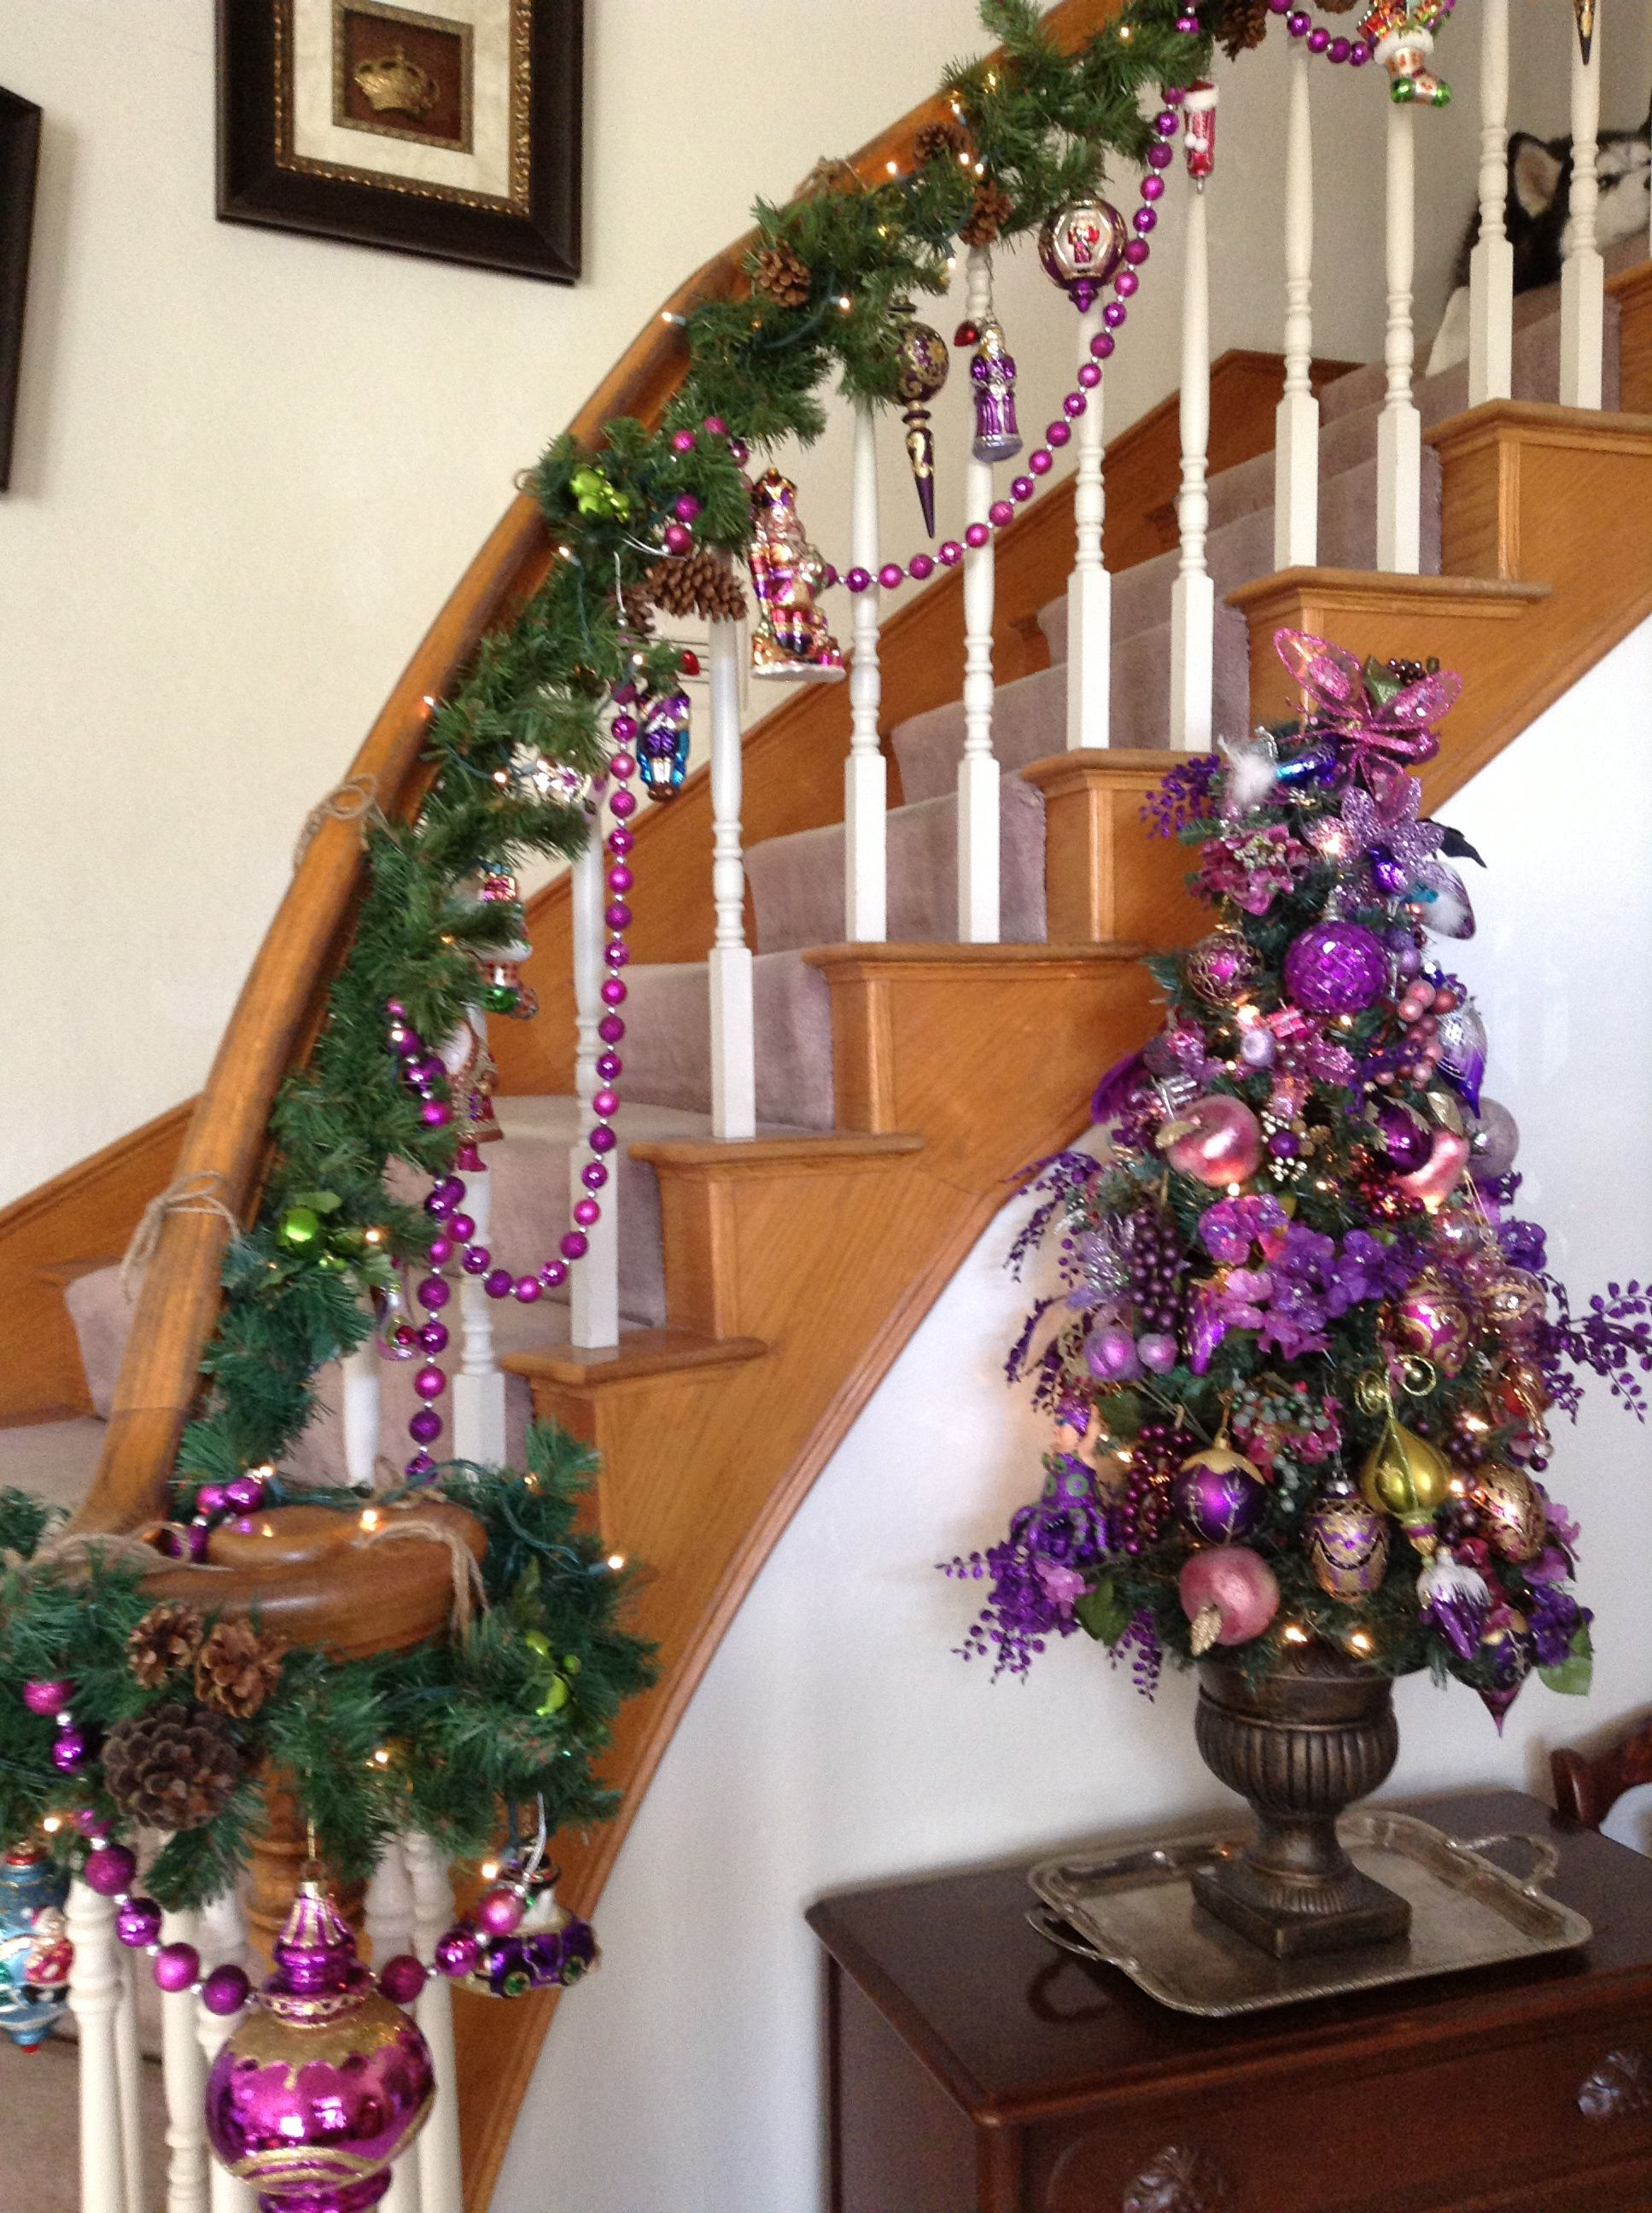 This year I hung glass ornaments from the stair railing ...